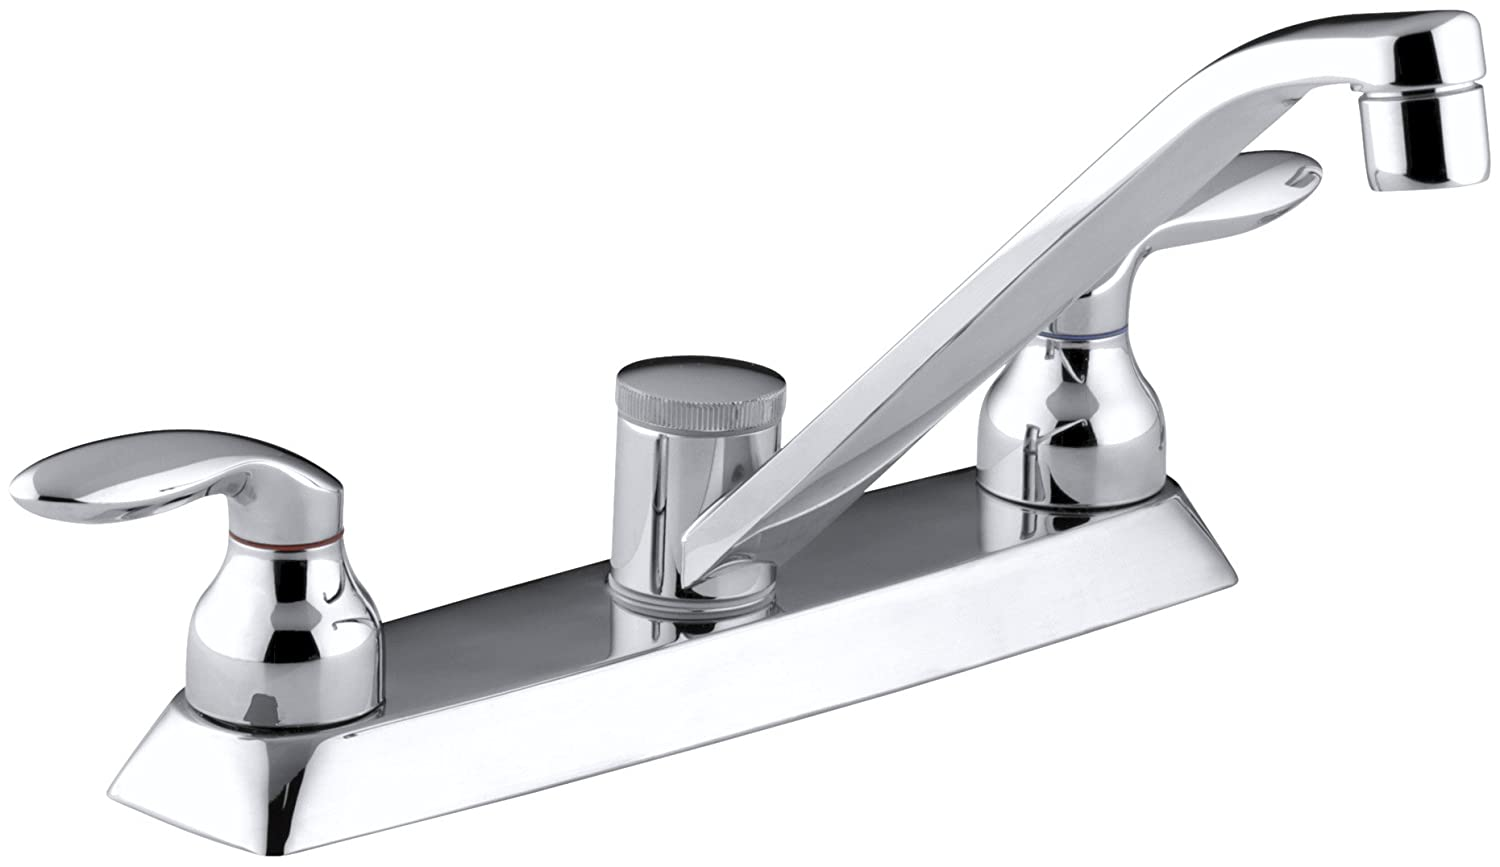 KOHLER K-15251-4-CP Coralais Kitchen Sink Faucet, Polished Chrome ...